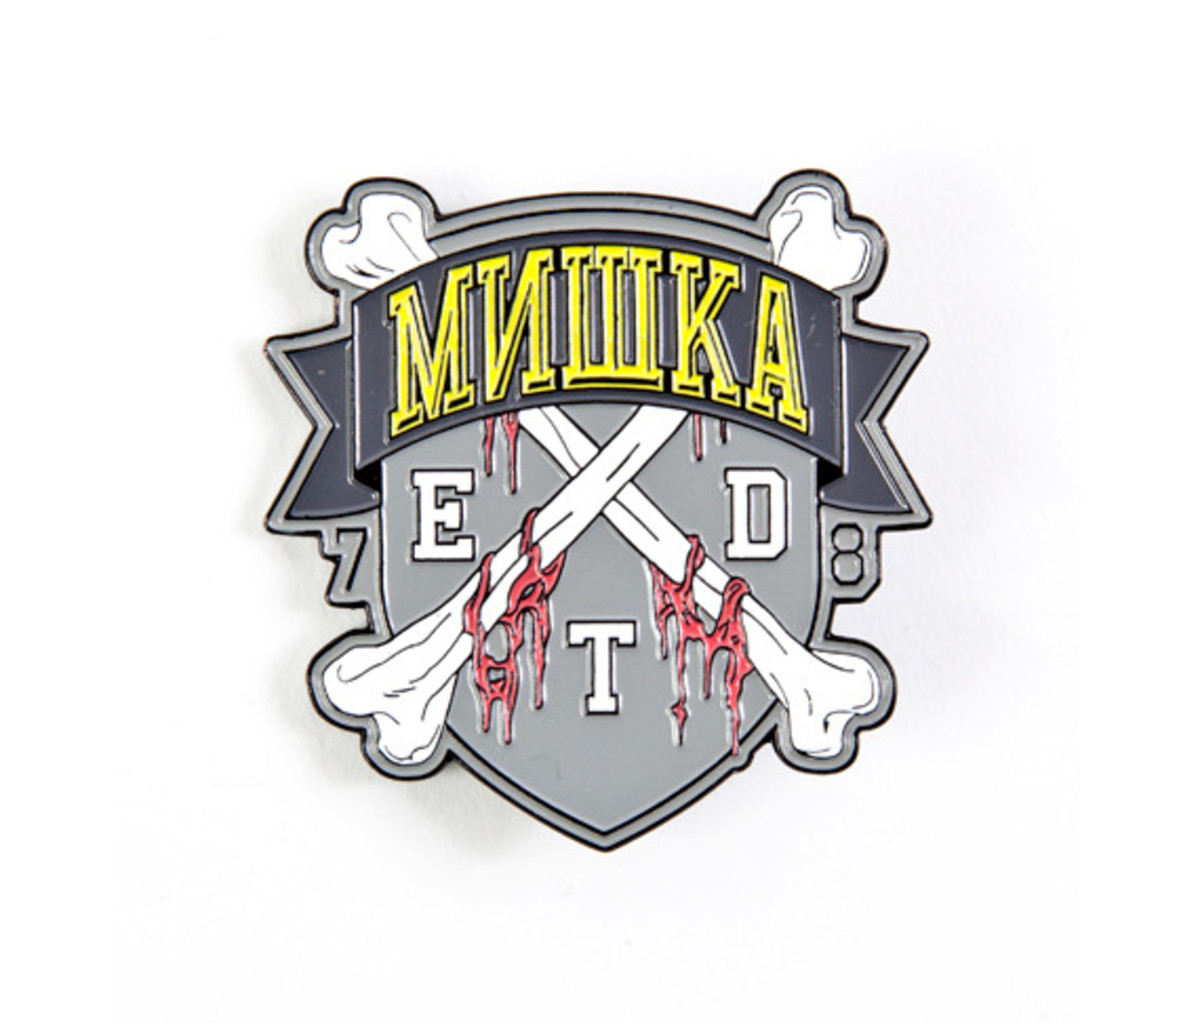 Mishka 10th Anniversary Decade of Destruction Capsule Collection 11